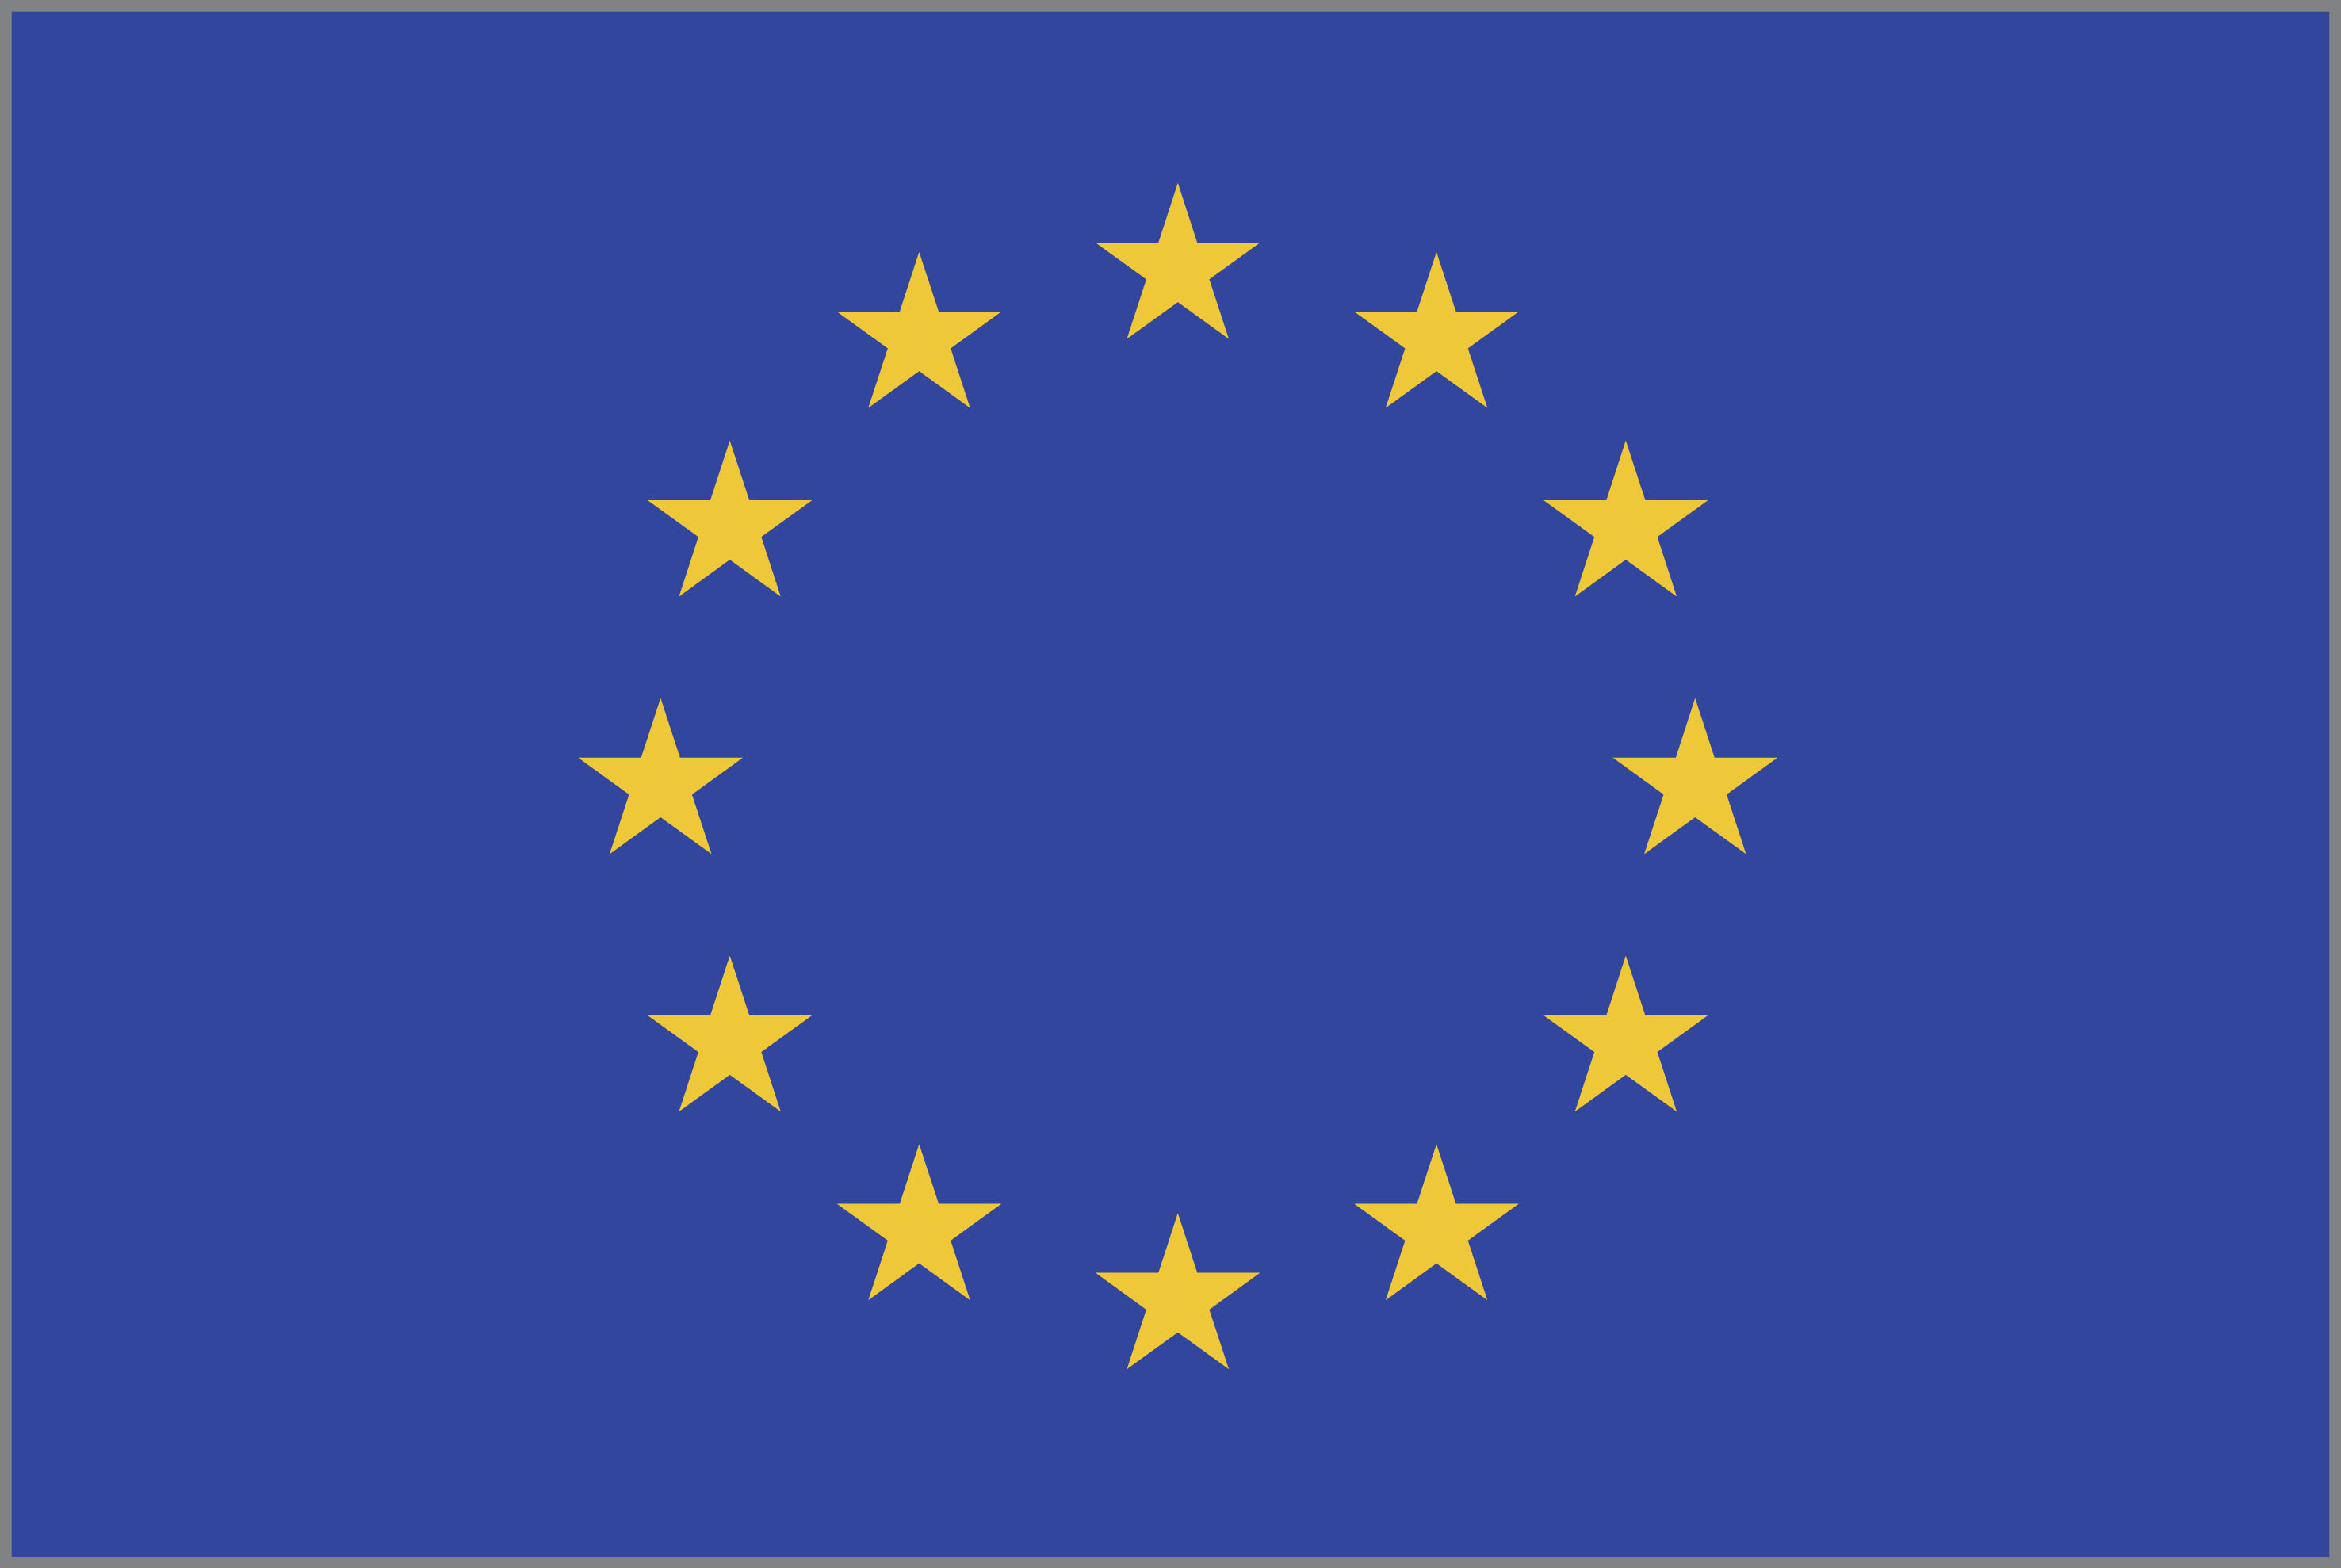 The European Parliament and Council agreed on 9 November to tighten the EU's dual-use export regime. (Getty Images)